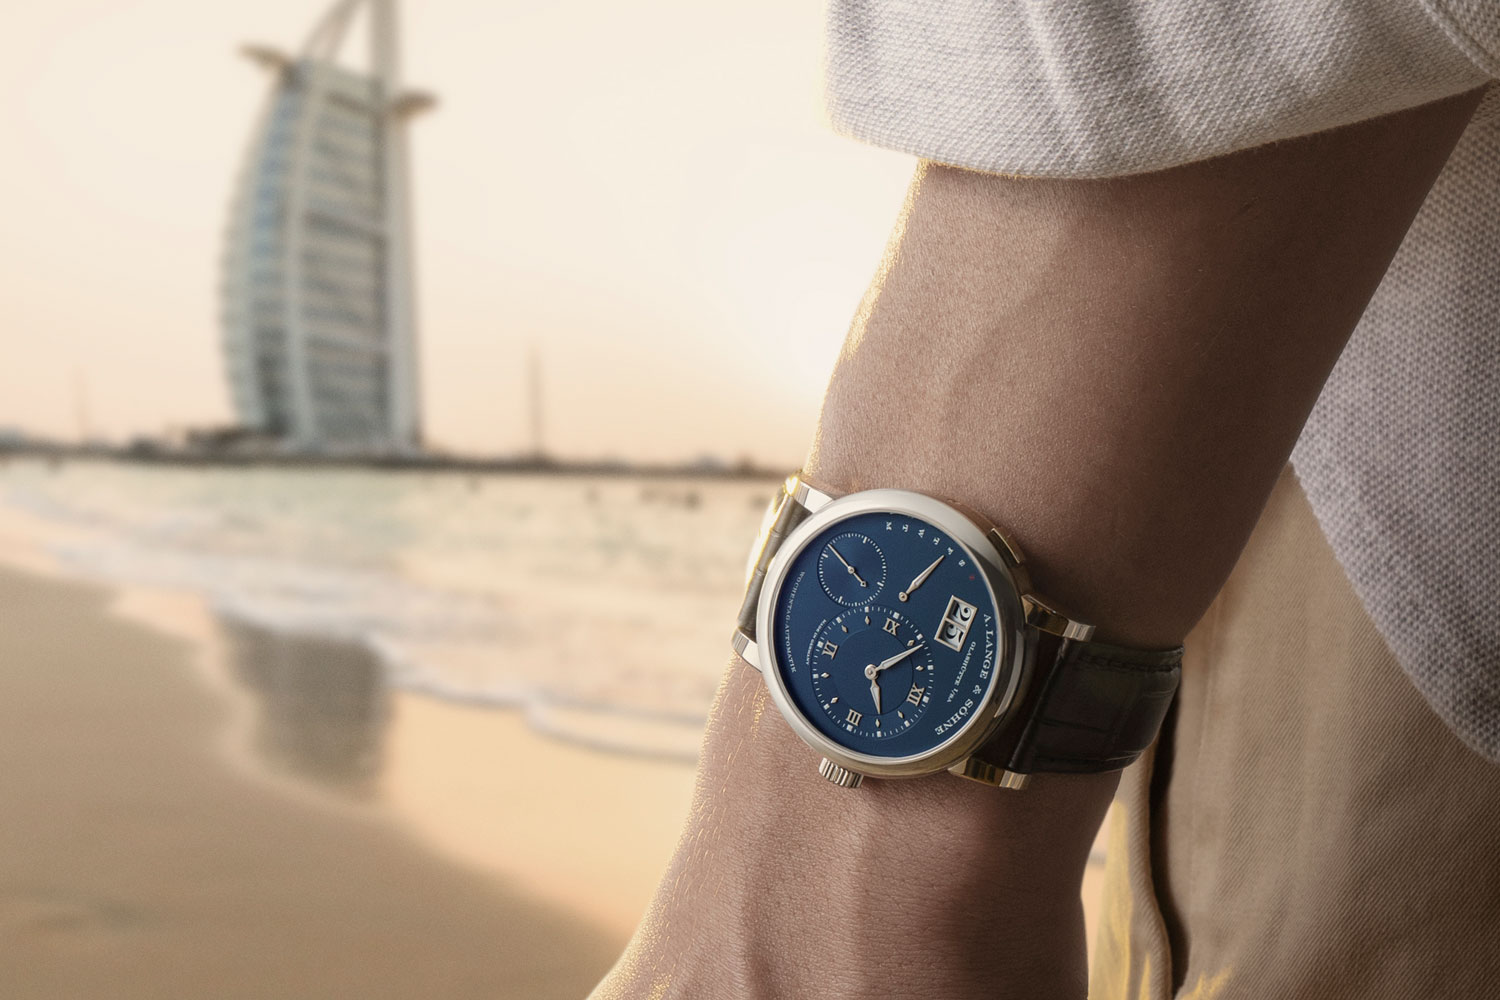 The Lange 1 Daymatic ref. 320.028 at the coast looking out to the Burj Al Arab Jumeirah (Image © Revolution)